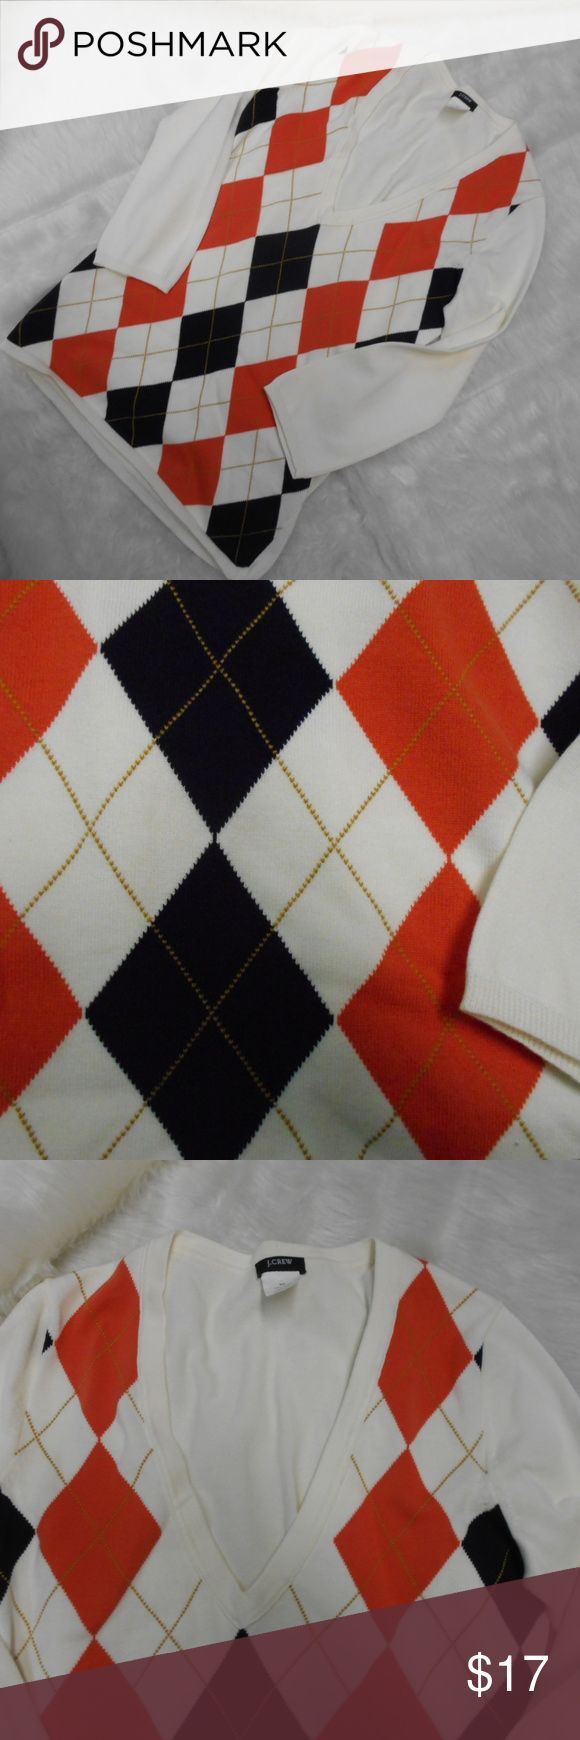 "J Crew Argyle Sweater Orange/Black/Gold; 3/4 sleev Lovely argyle sweater.  Orange & black with gold details.  Long sleeve, V-neck, 1/2"" ribbing at sleeve and hemline.  Pristine condition.  From smoke free home 16"" armpit to armpit; 15"" side to side at bottom;  17"" sleeve 3/4 length; 23"" long from back neck to hem.  100% cotton J. Crew Sweaters"